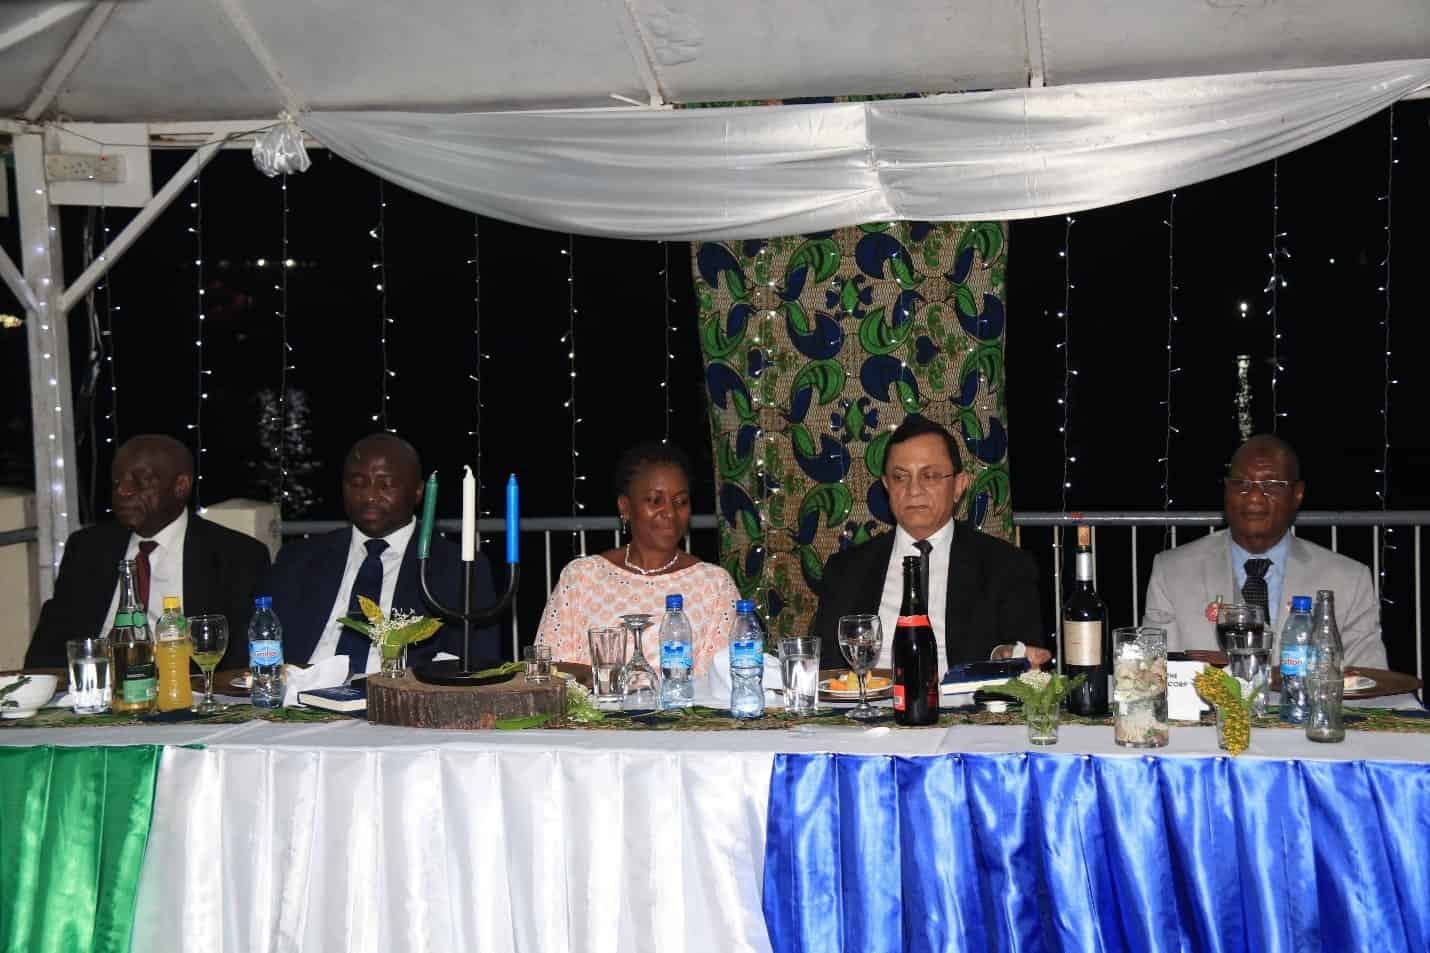 Foreign Minister Interacts with Diplomatic and Consular Corps at Reception Held at Sierra Light House on 28th November, 2019